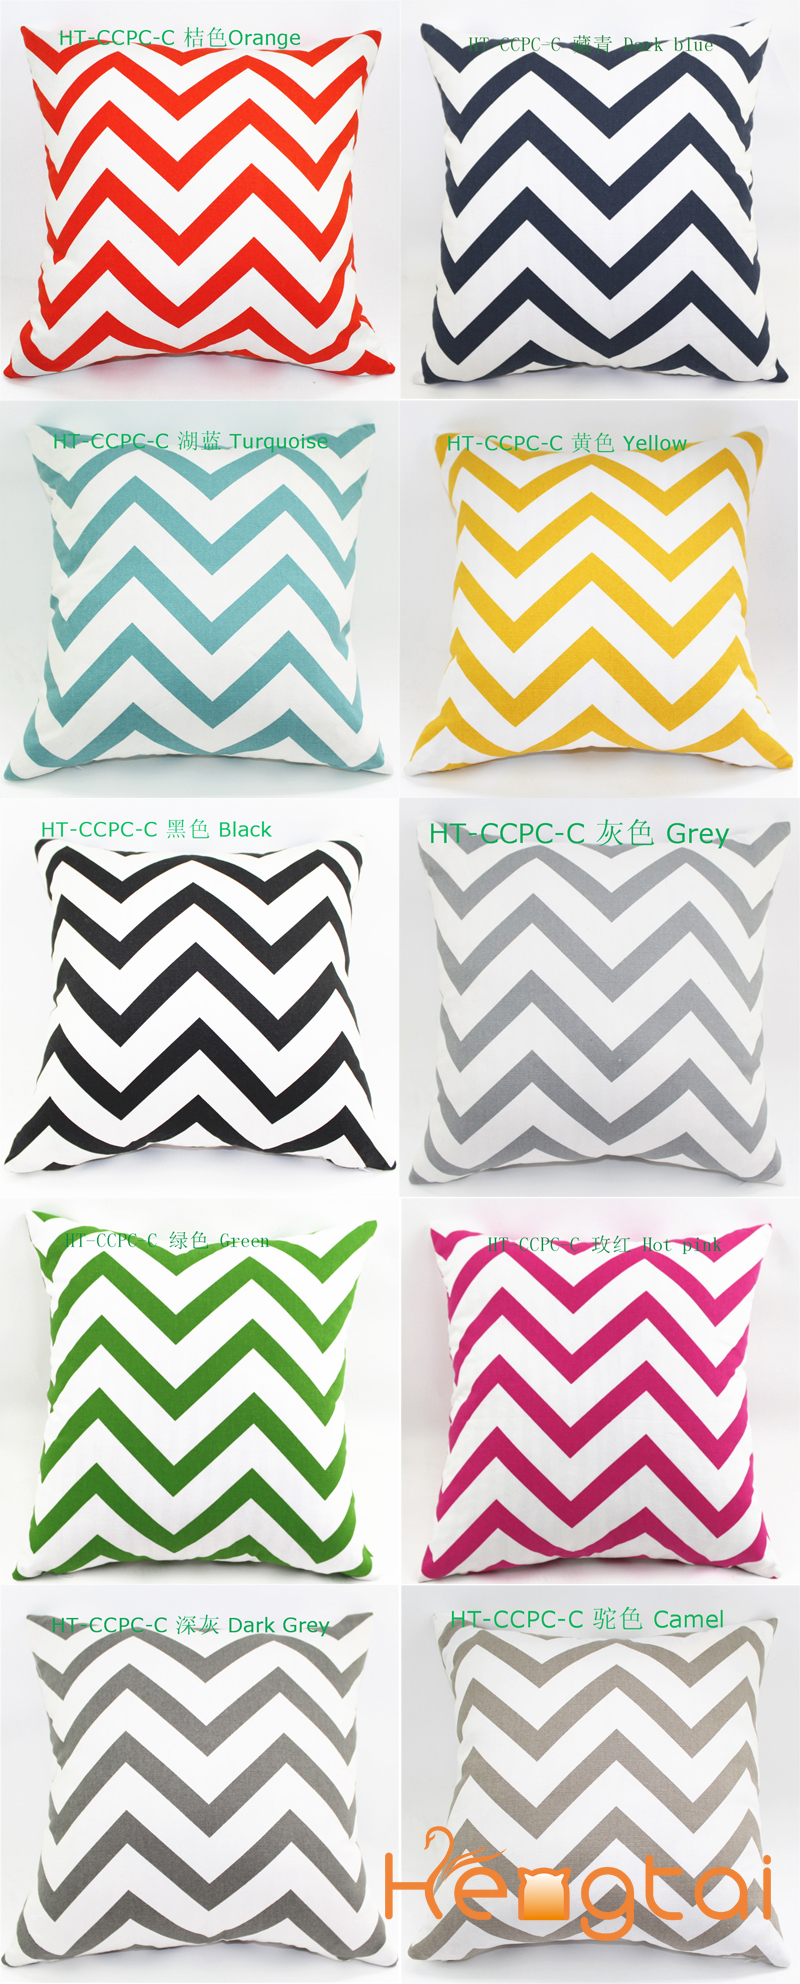 latest design Zig Zag Digital Printing Sofa Cotton Canvas Chevron Cushion Cover Throw Pillow Case china supplier